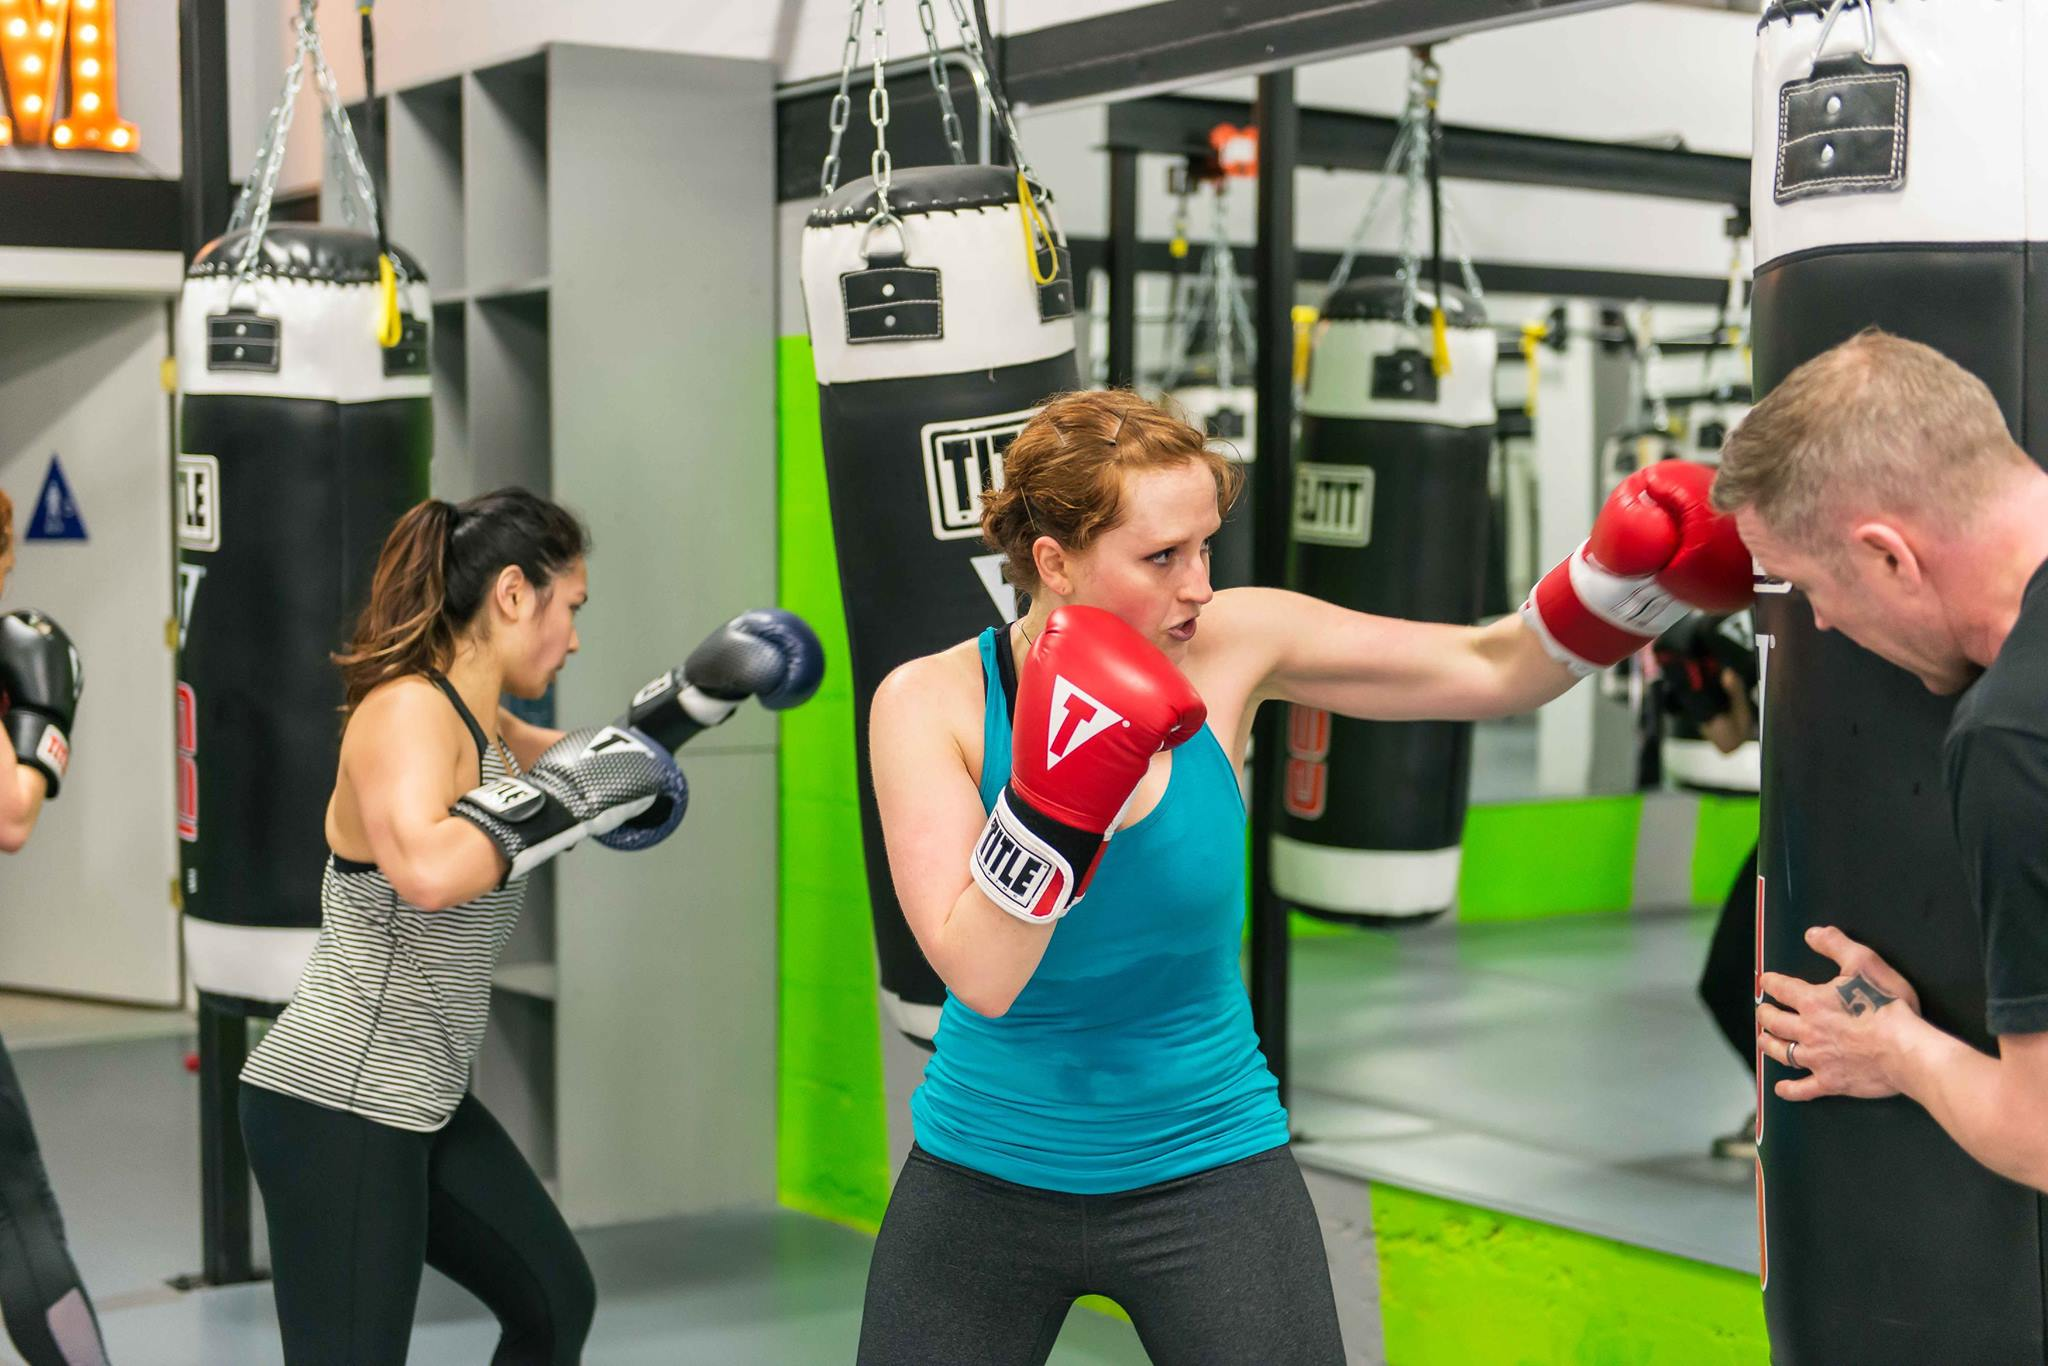 HitFit.  This San Francisco magazine favorite—it won best bootcamp in 2017—has locations in both the Mission and the TenderNob.The spaces are well-maintained, the equipment is shiny and new, and there are LOTS of evening classes with some of the best trainers in the city. (Seriously, go see Troy and Cole.)